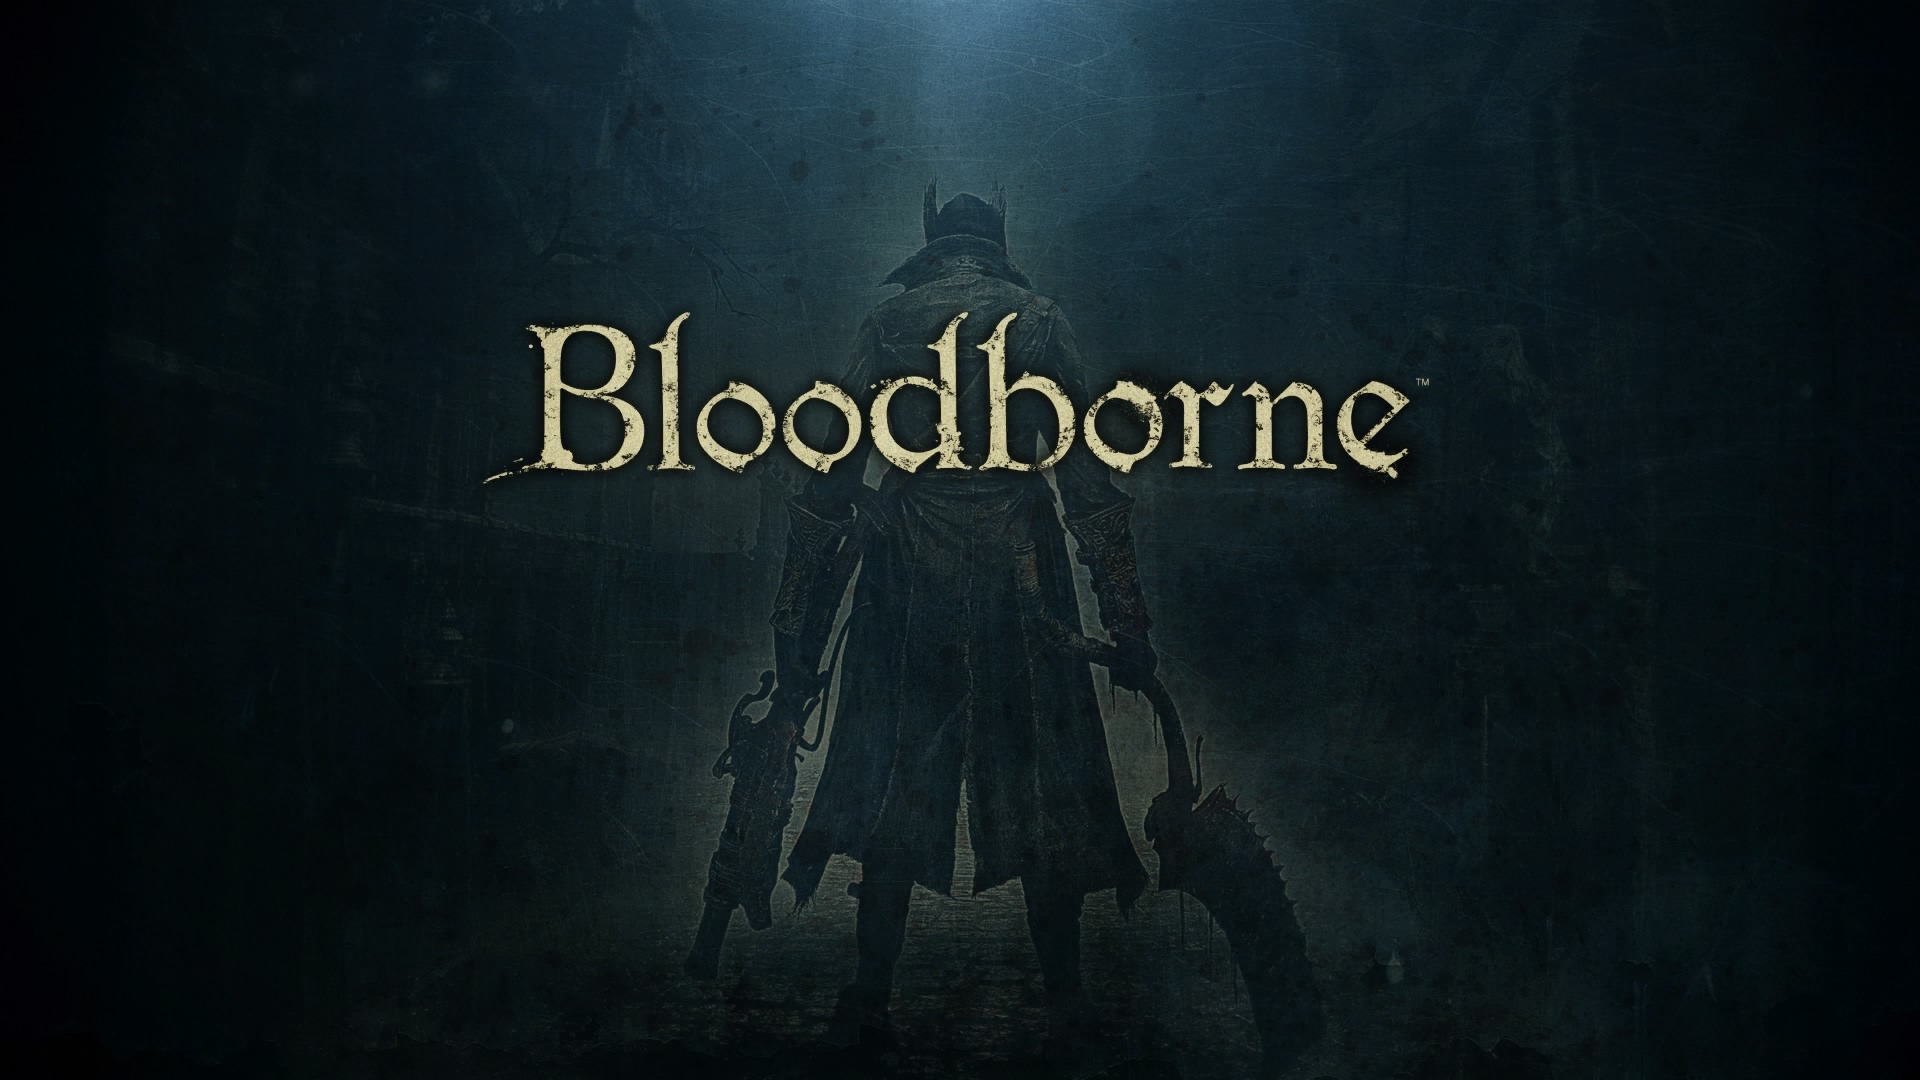 All imagery is taken from  Bloodborne  which is the property of  FromSoftware  and  Sony Computer Entertainment © 2015. Please support the official release.